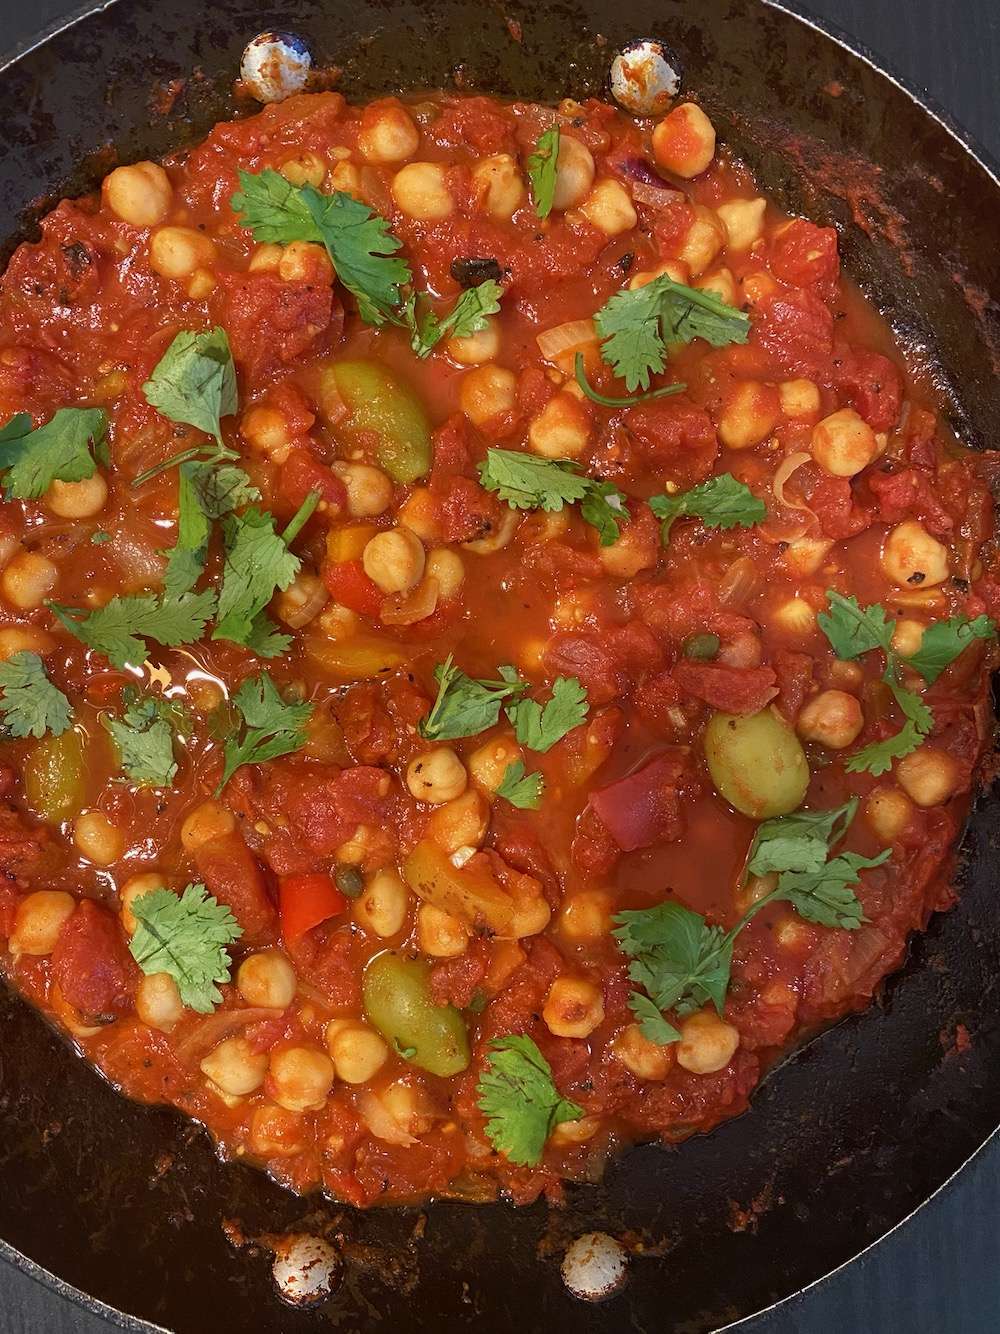 Chickpeas simmered in tomatoes.